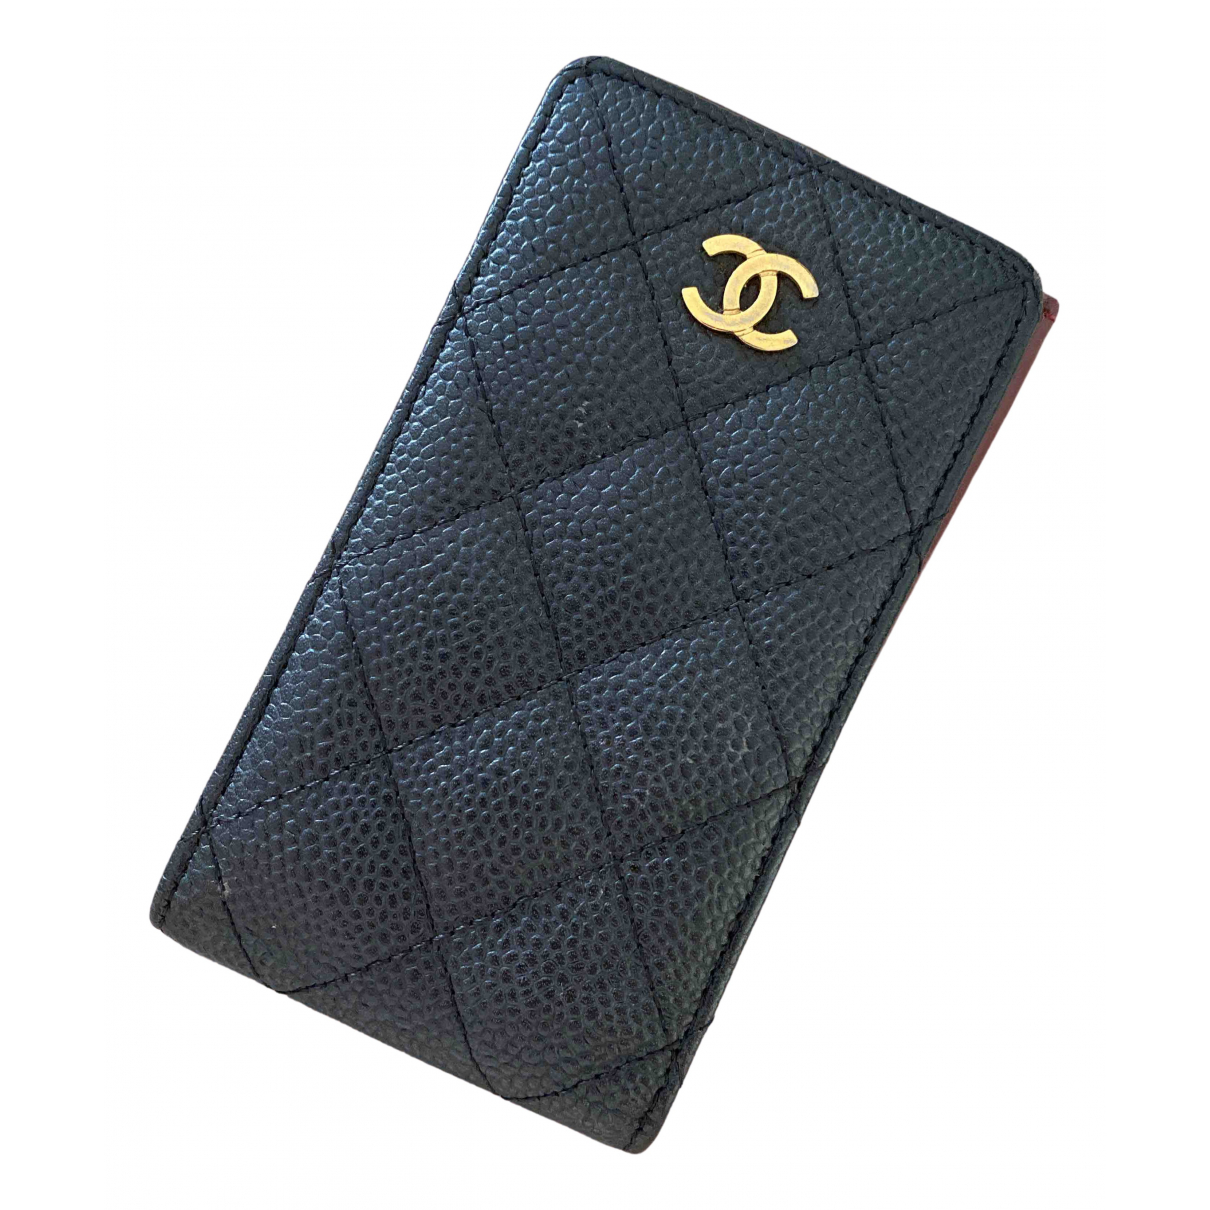 Chanel \N Black Leather Accessories for Life & Living \N